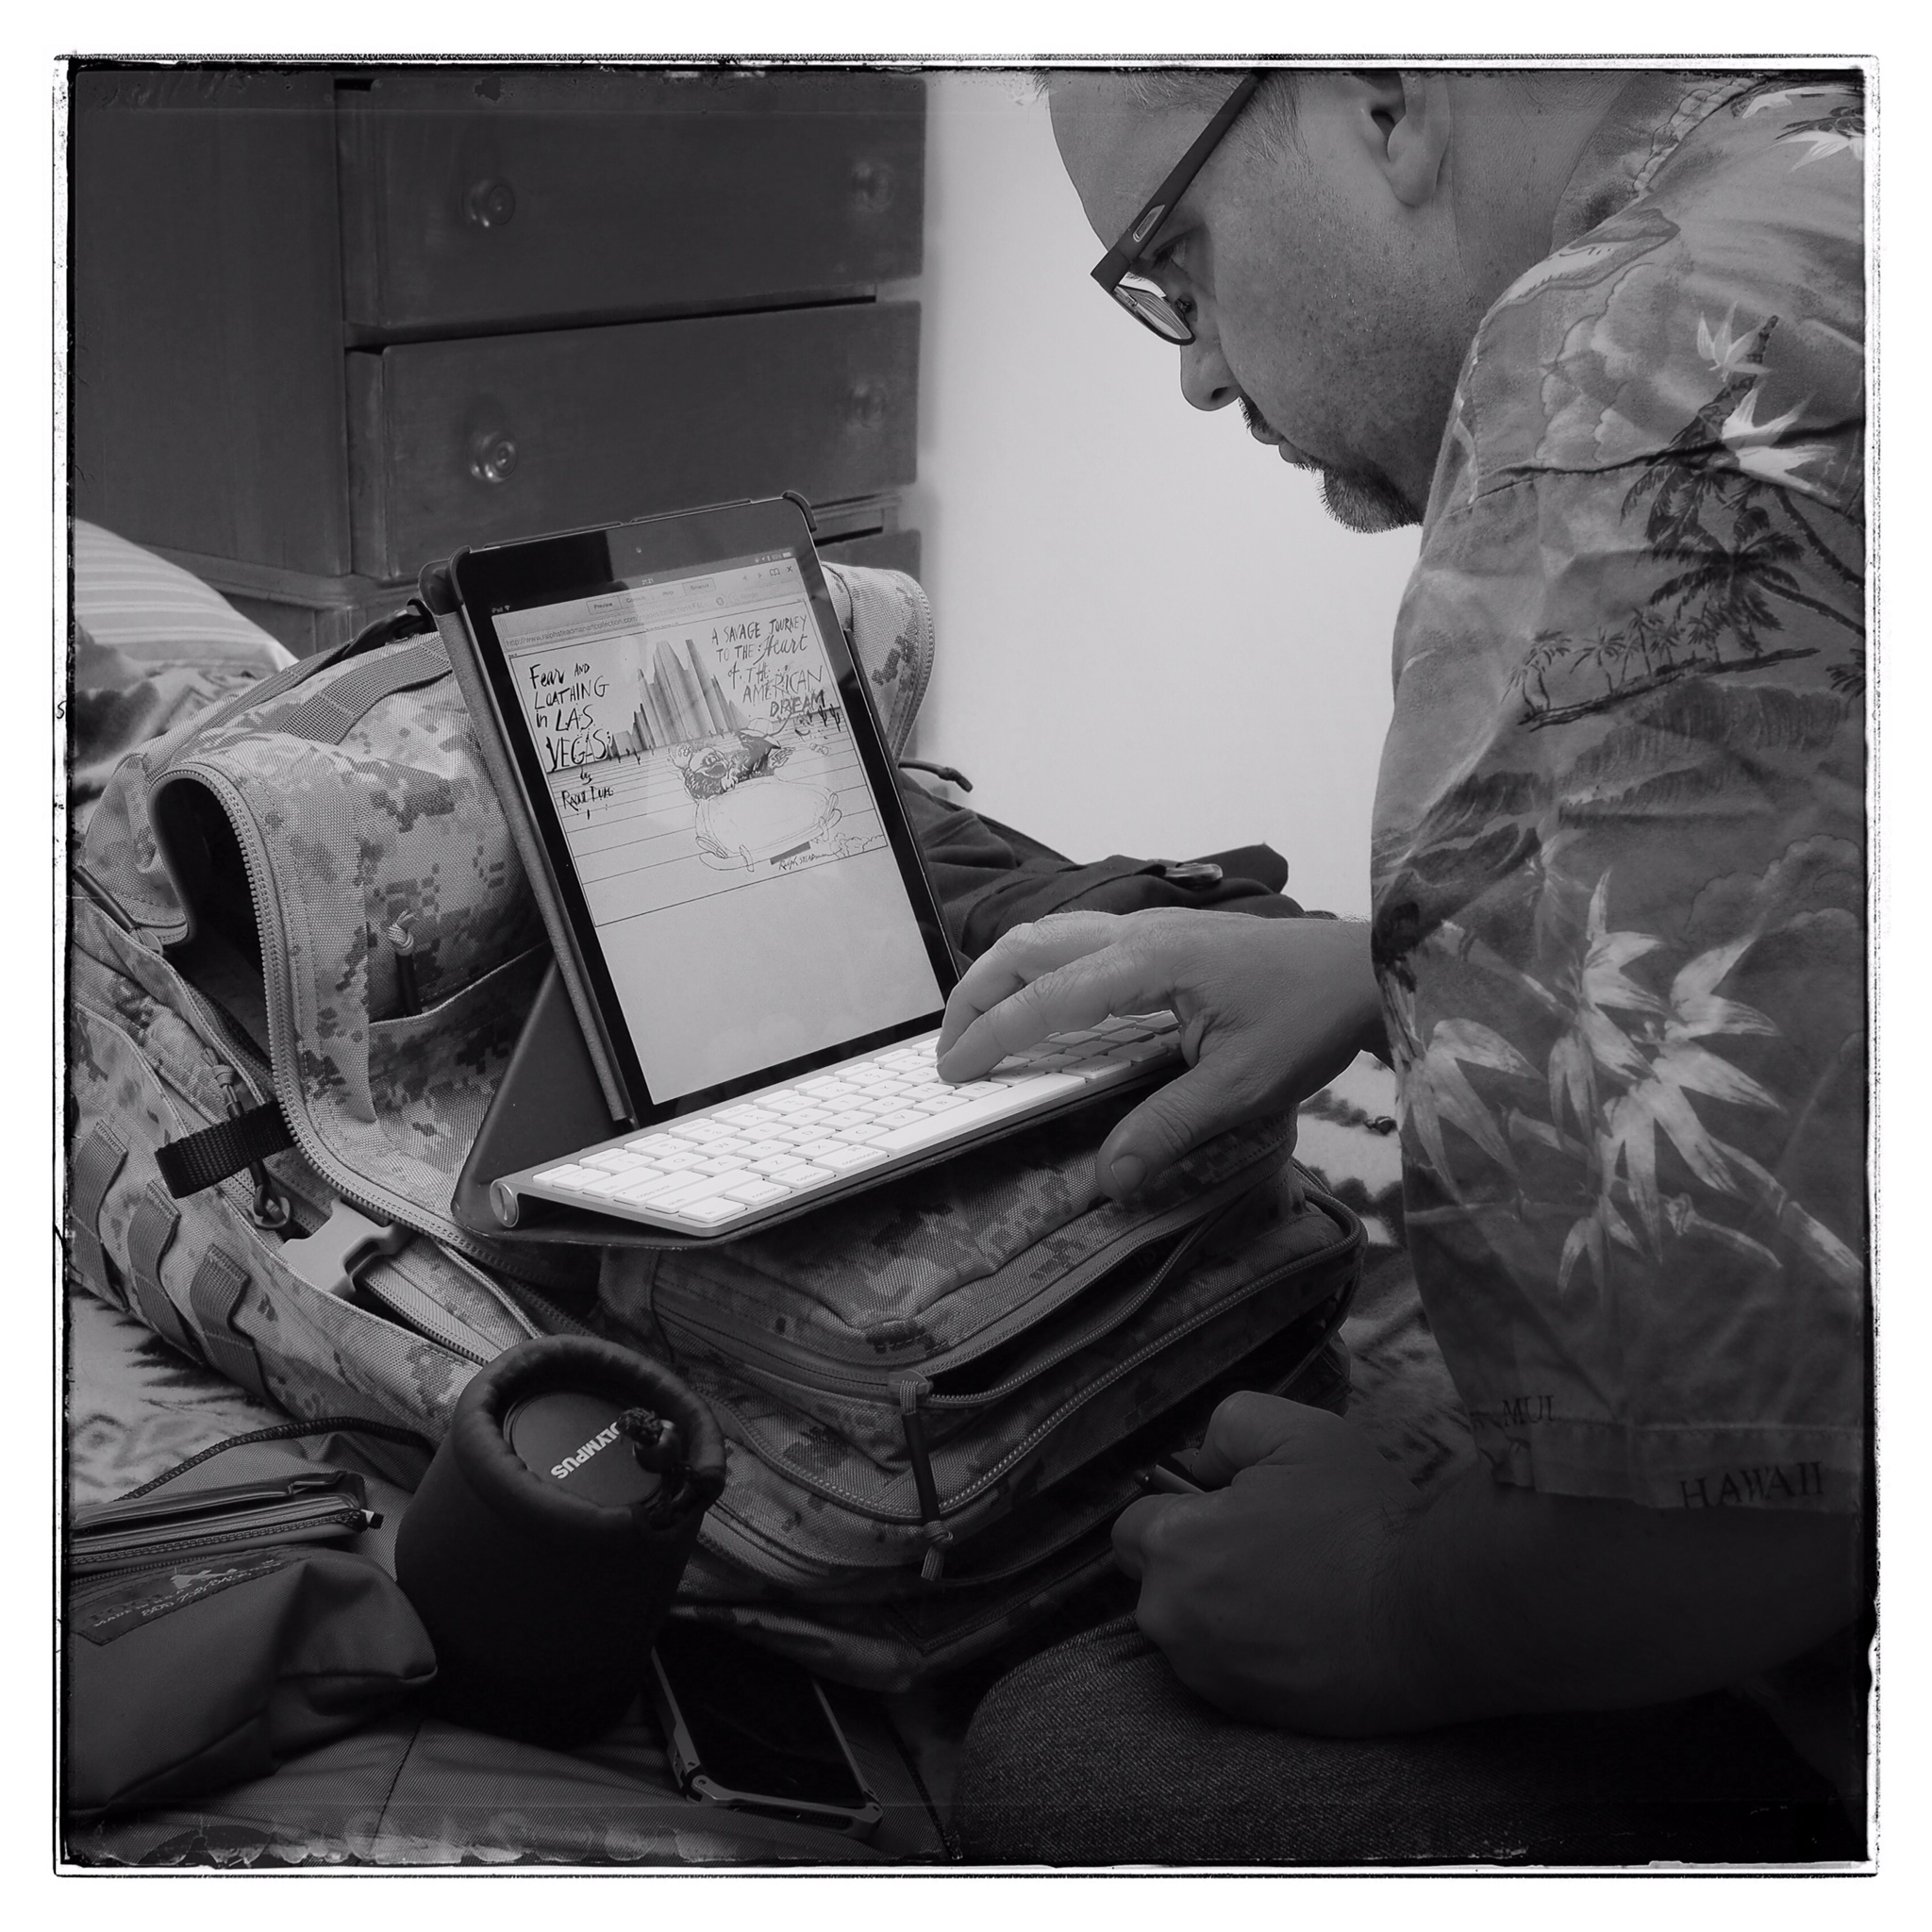 Author using iPad resting on backpack